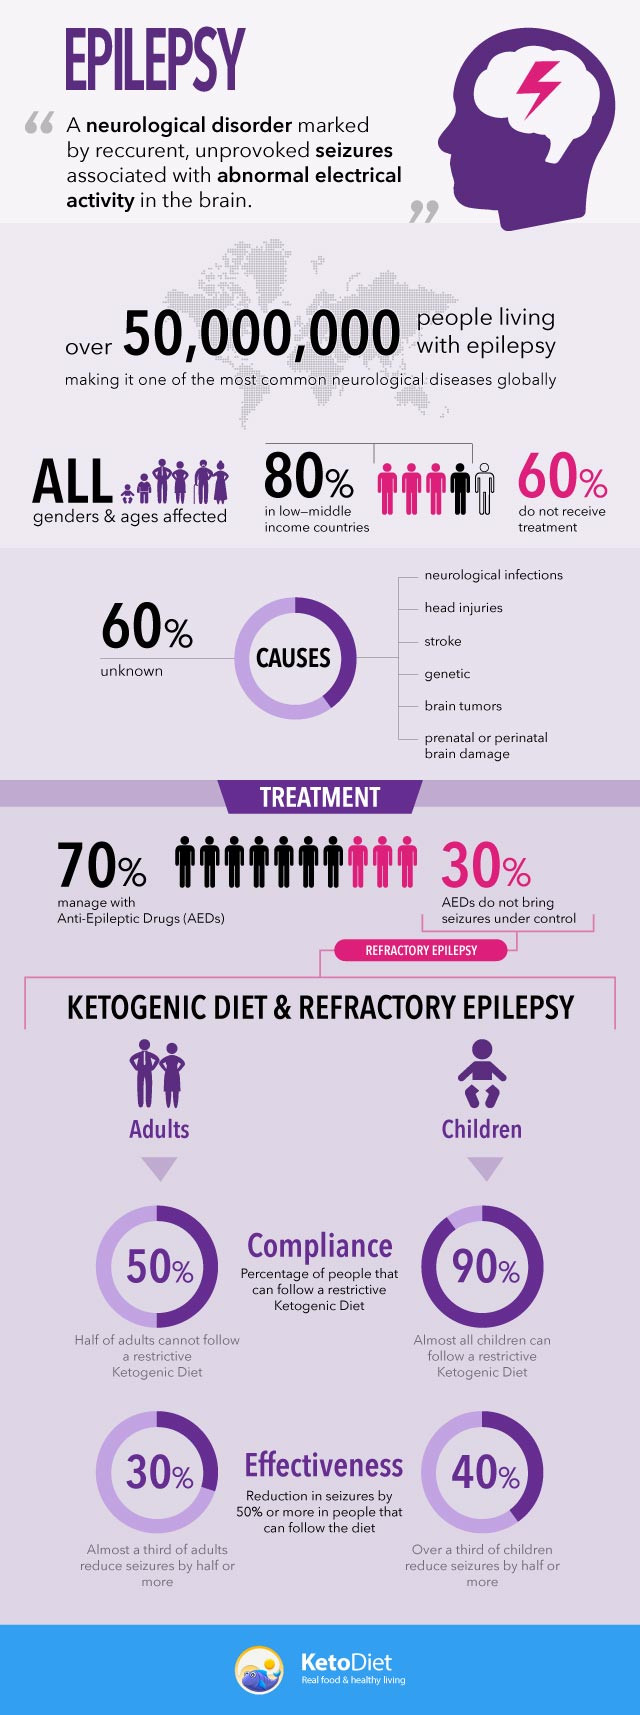 Keto Diet And Epilepsy  Ketogenic Diet and Epilepsy